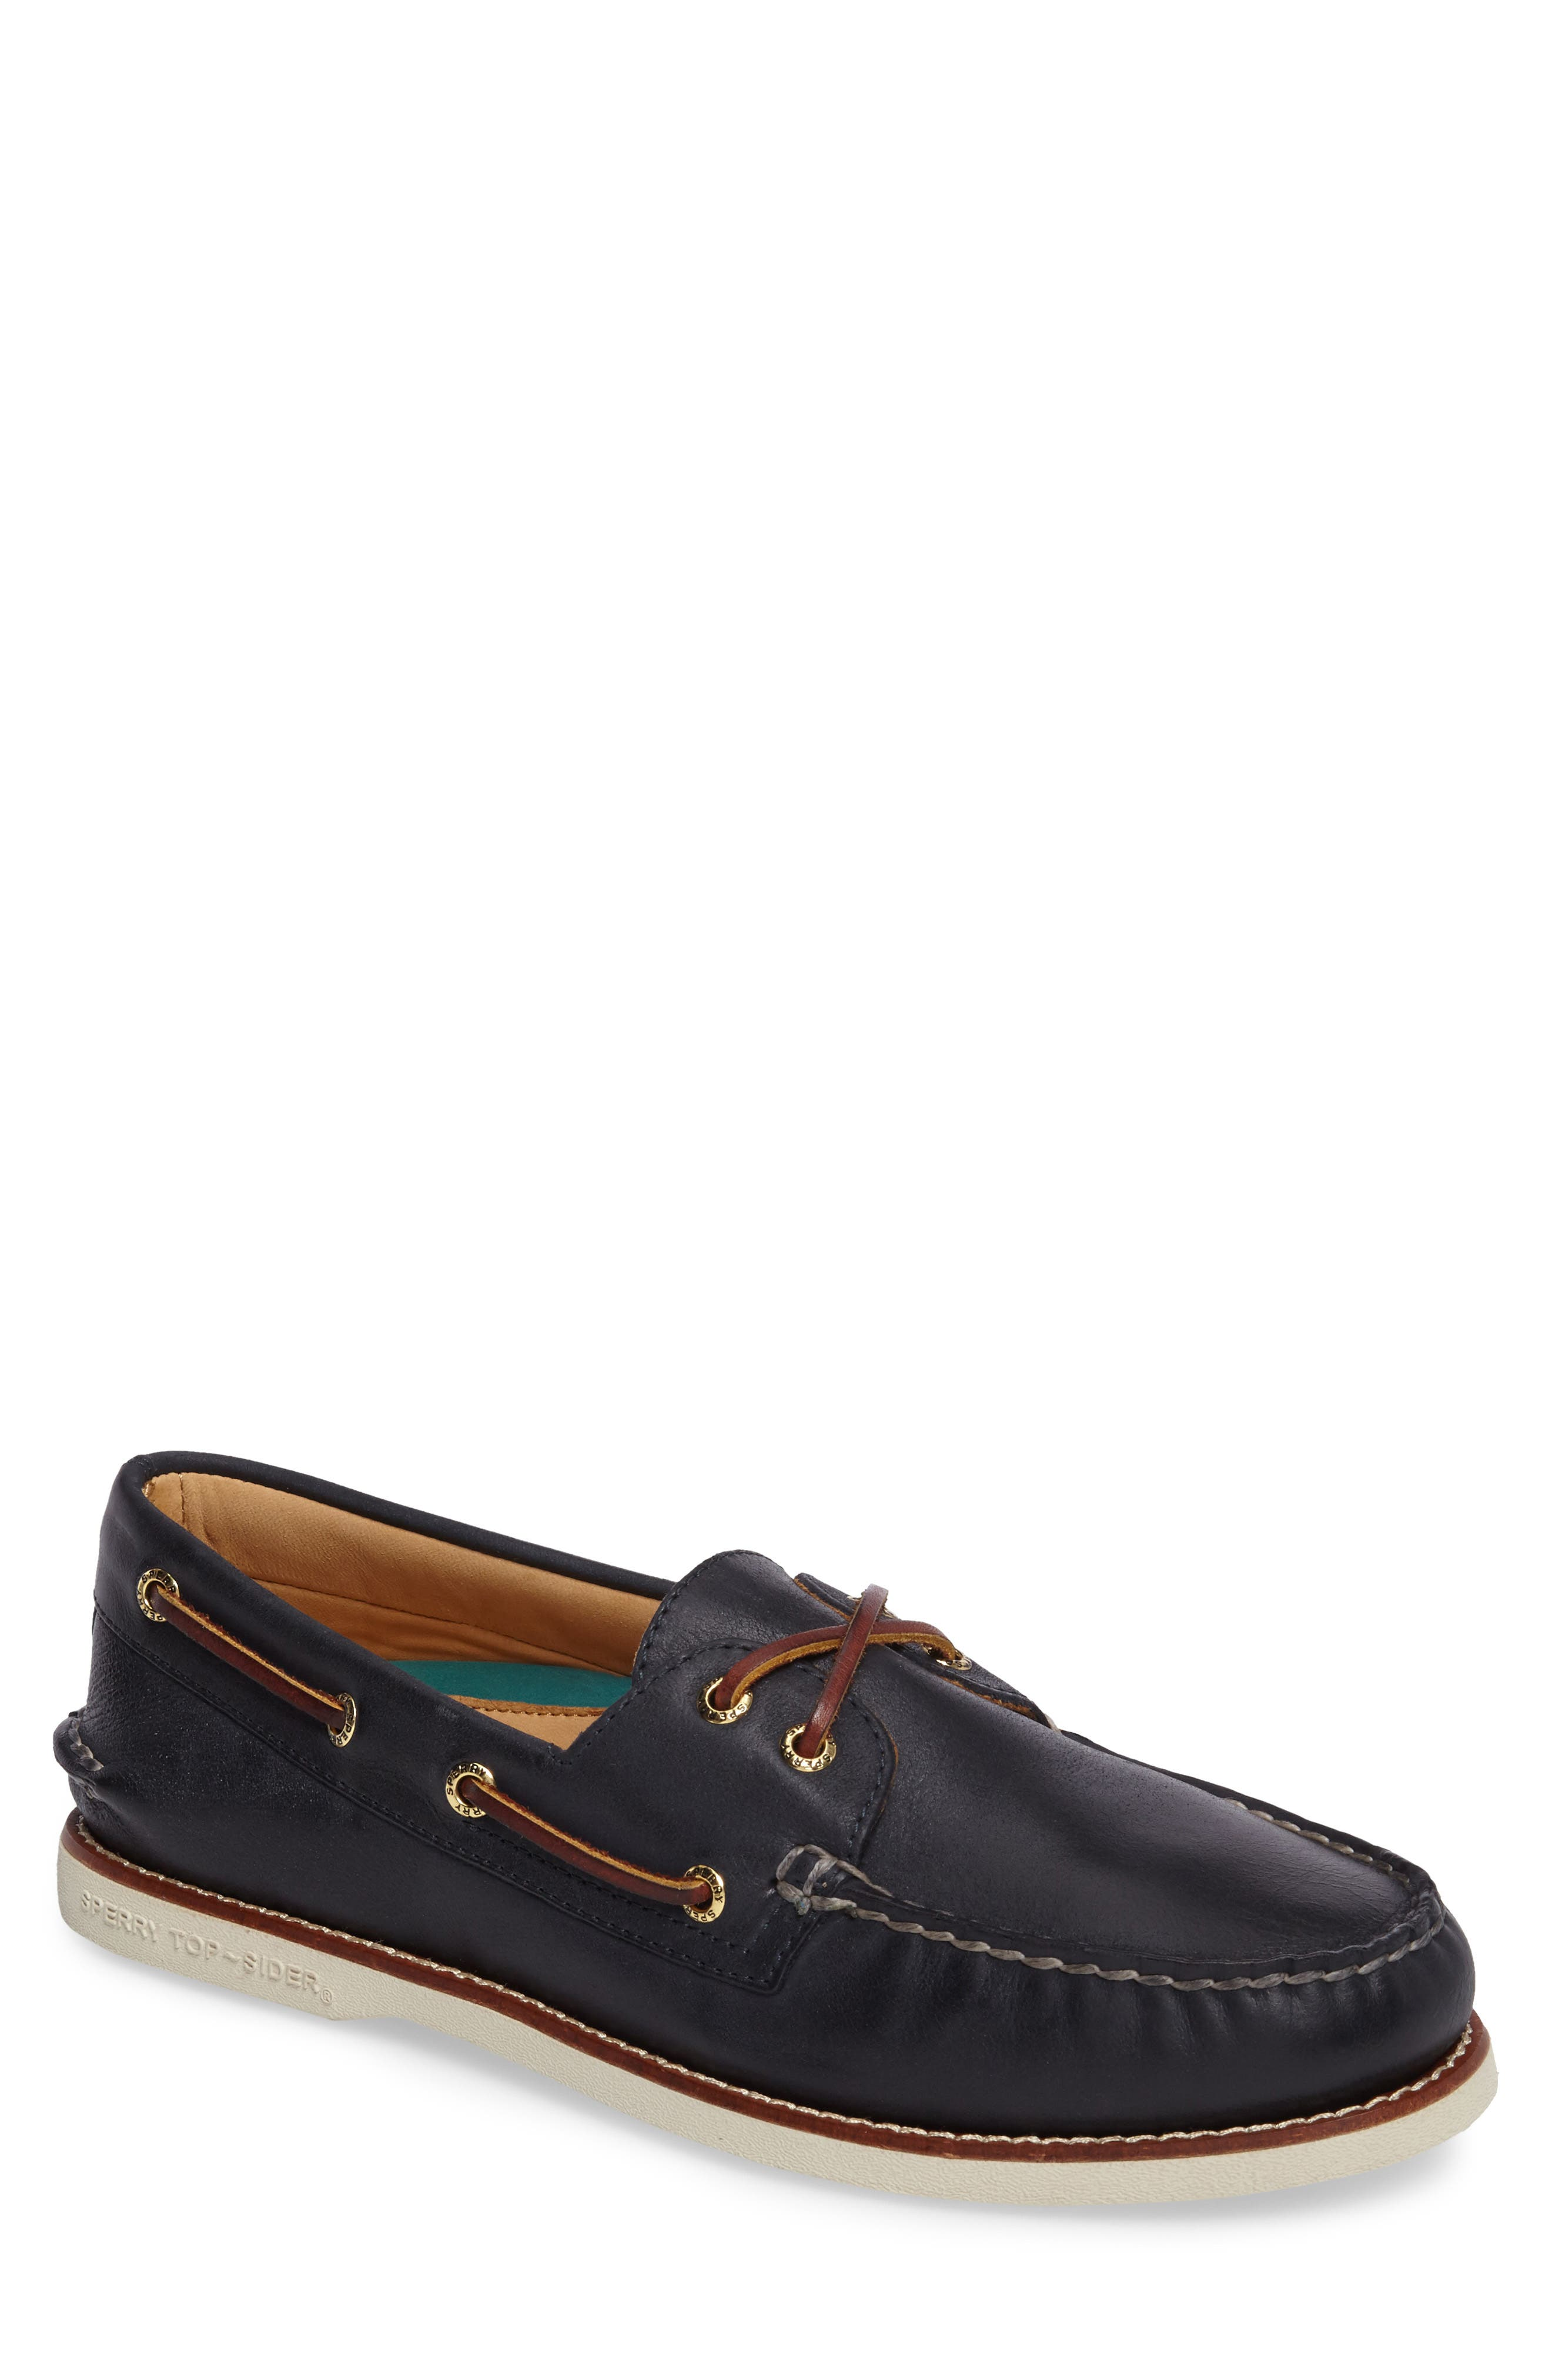 SPERRY 'Gold Cup - Authentic Original' Boat Shoe in Navy Leather